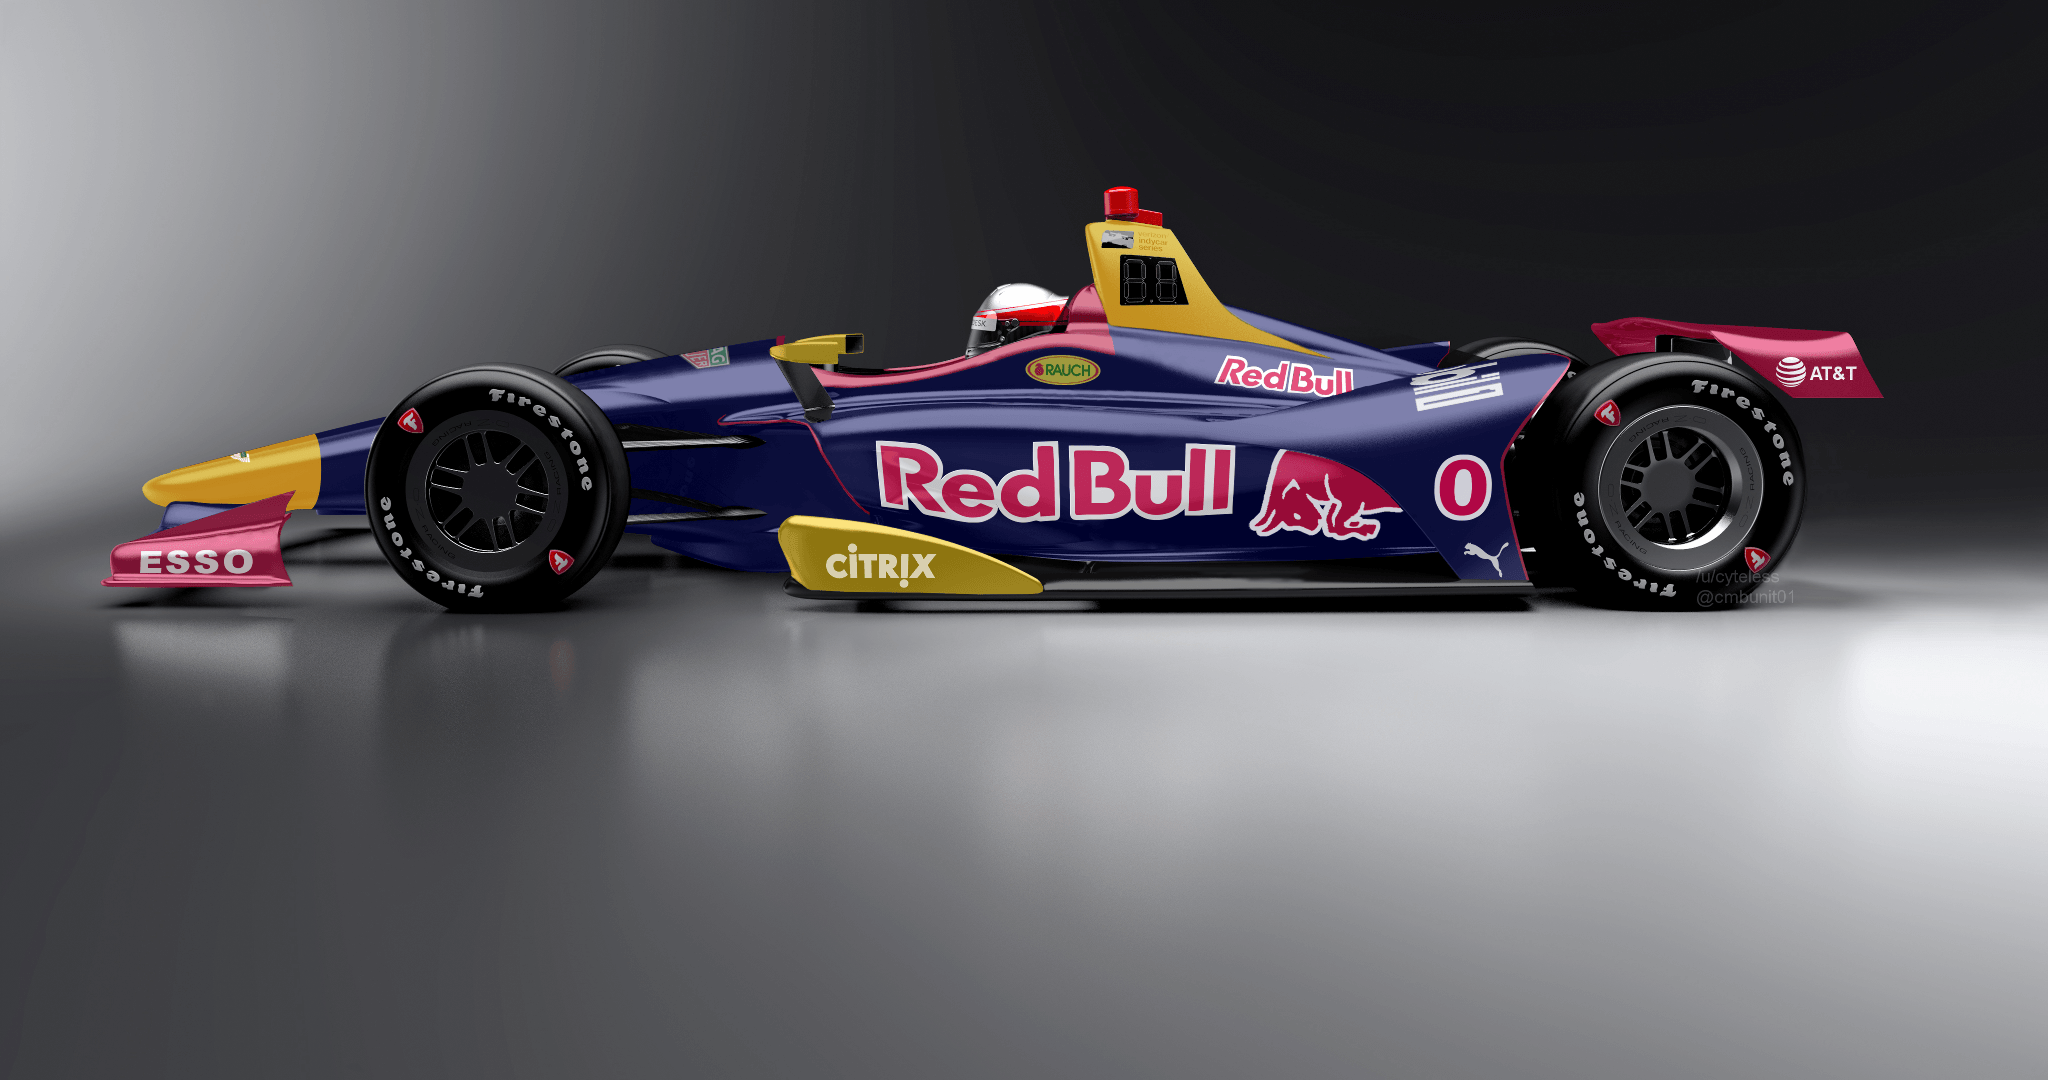 Concept of a Red Bull entry with the 2018 IndyCar : INDYCAR